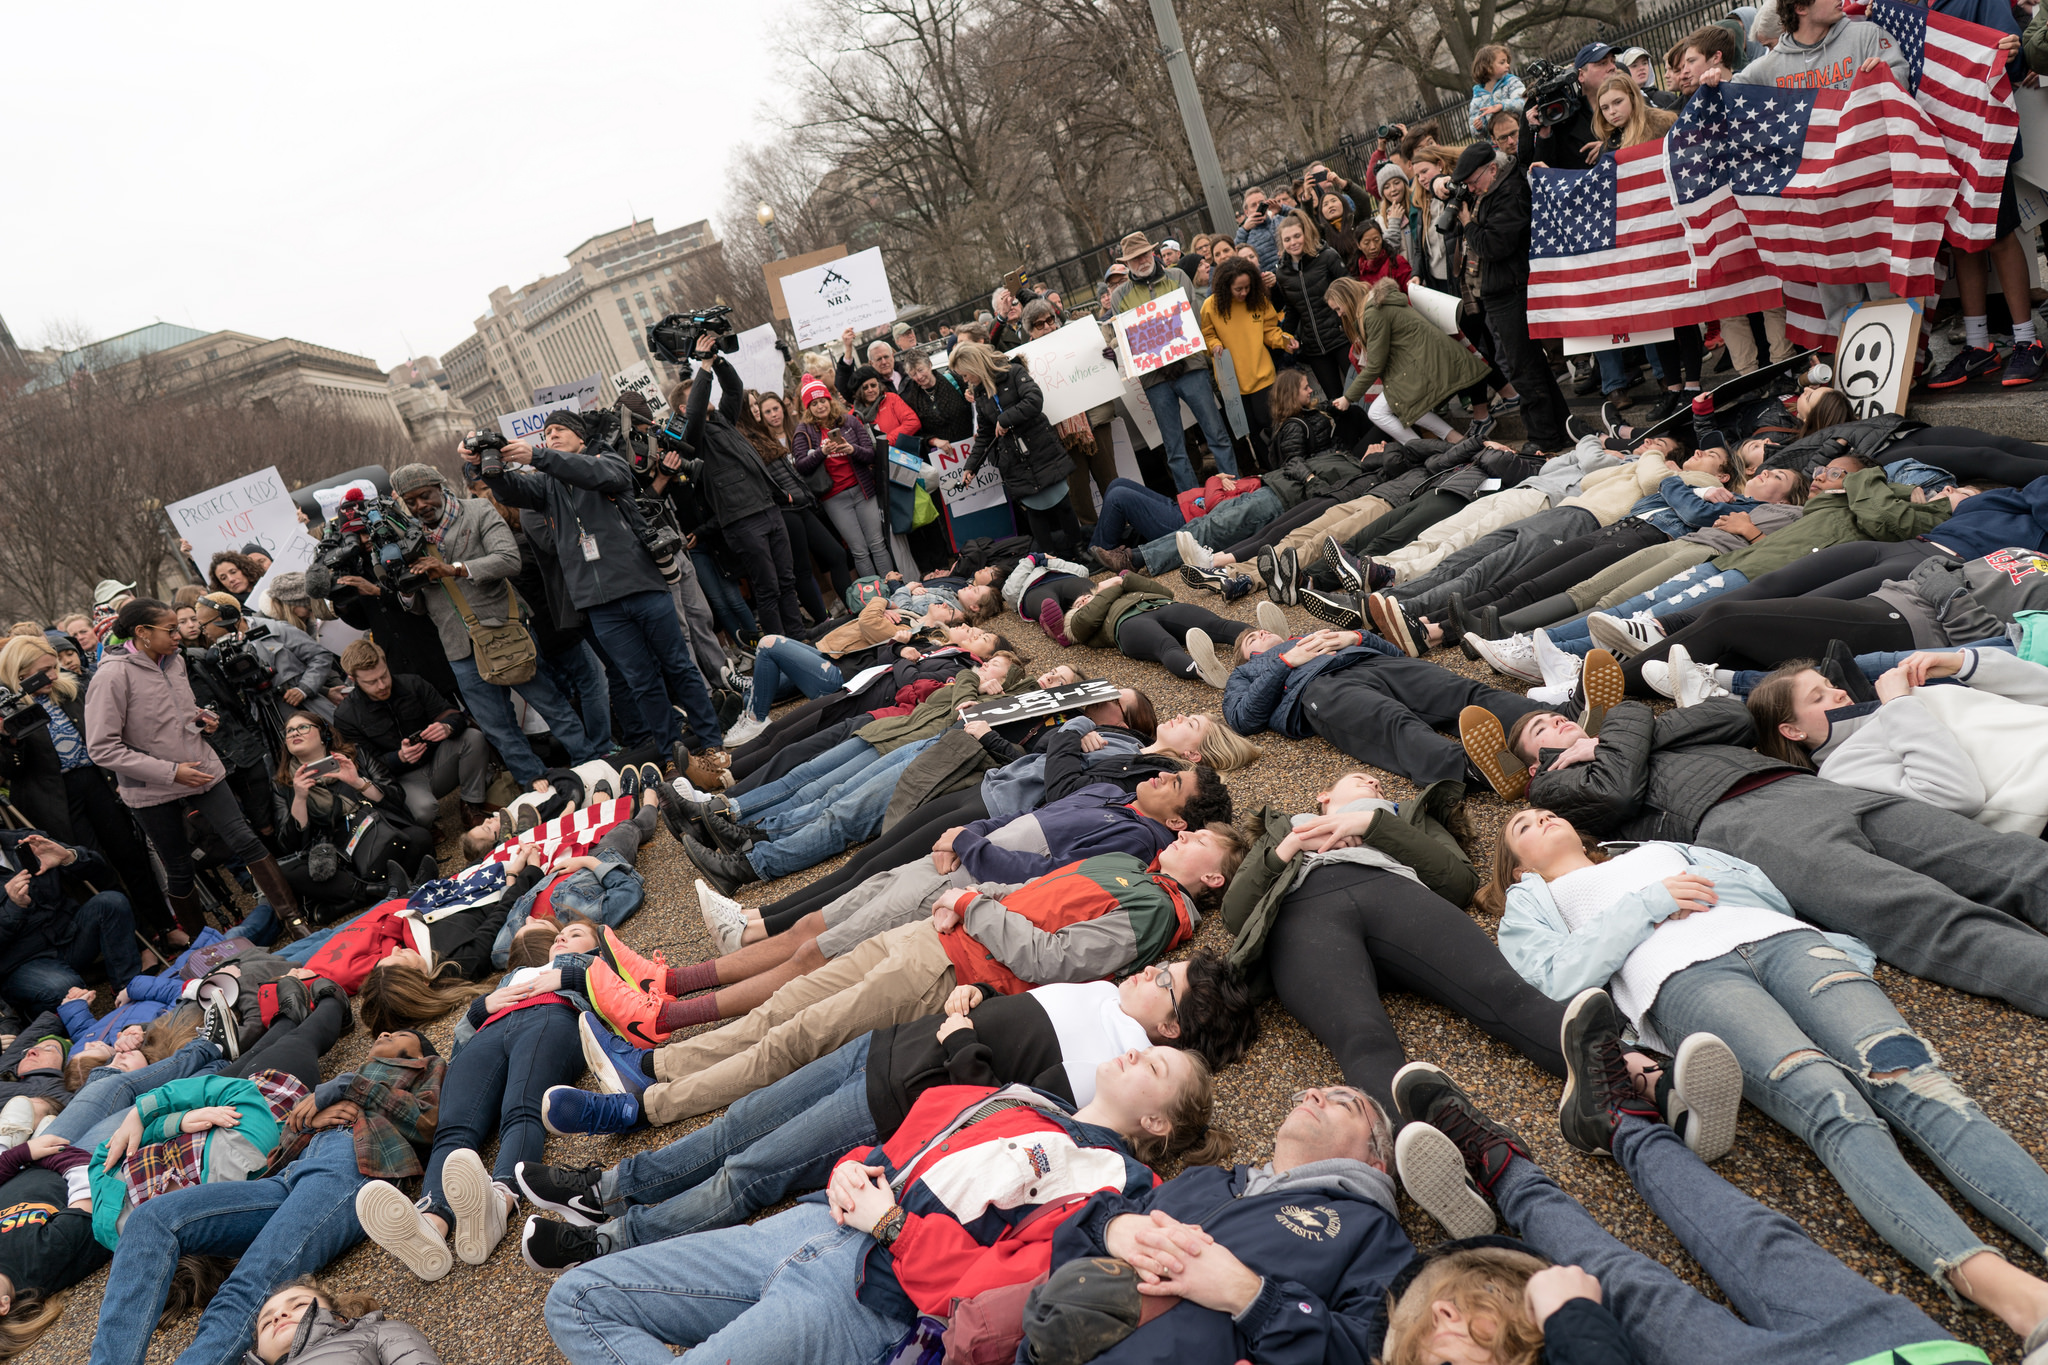 Students lie-in at the White House on Feb. 19 to protest gun laws. The demonstration was organized by Teens For Gun Reform, an organization created by students in the Washington DC area, in the wake of the shooting at Marjory Stoneman Douglas High School in Parkland, Florida. (Photo Lorie Shaull/Flickr)